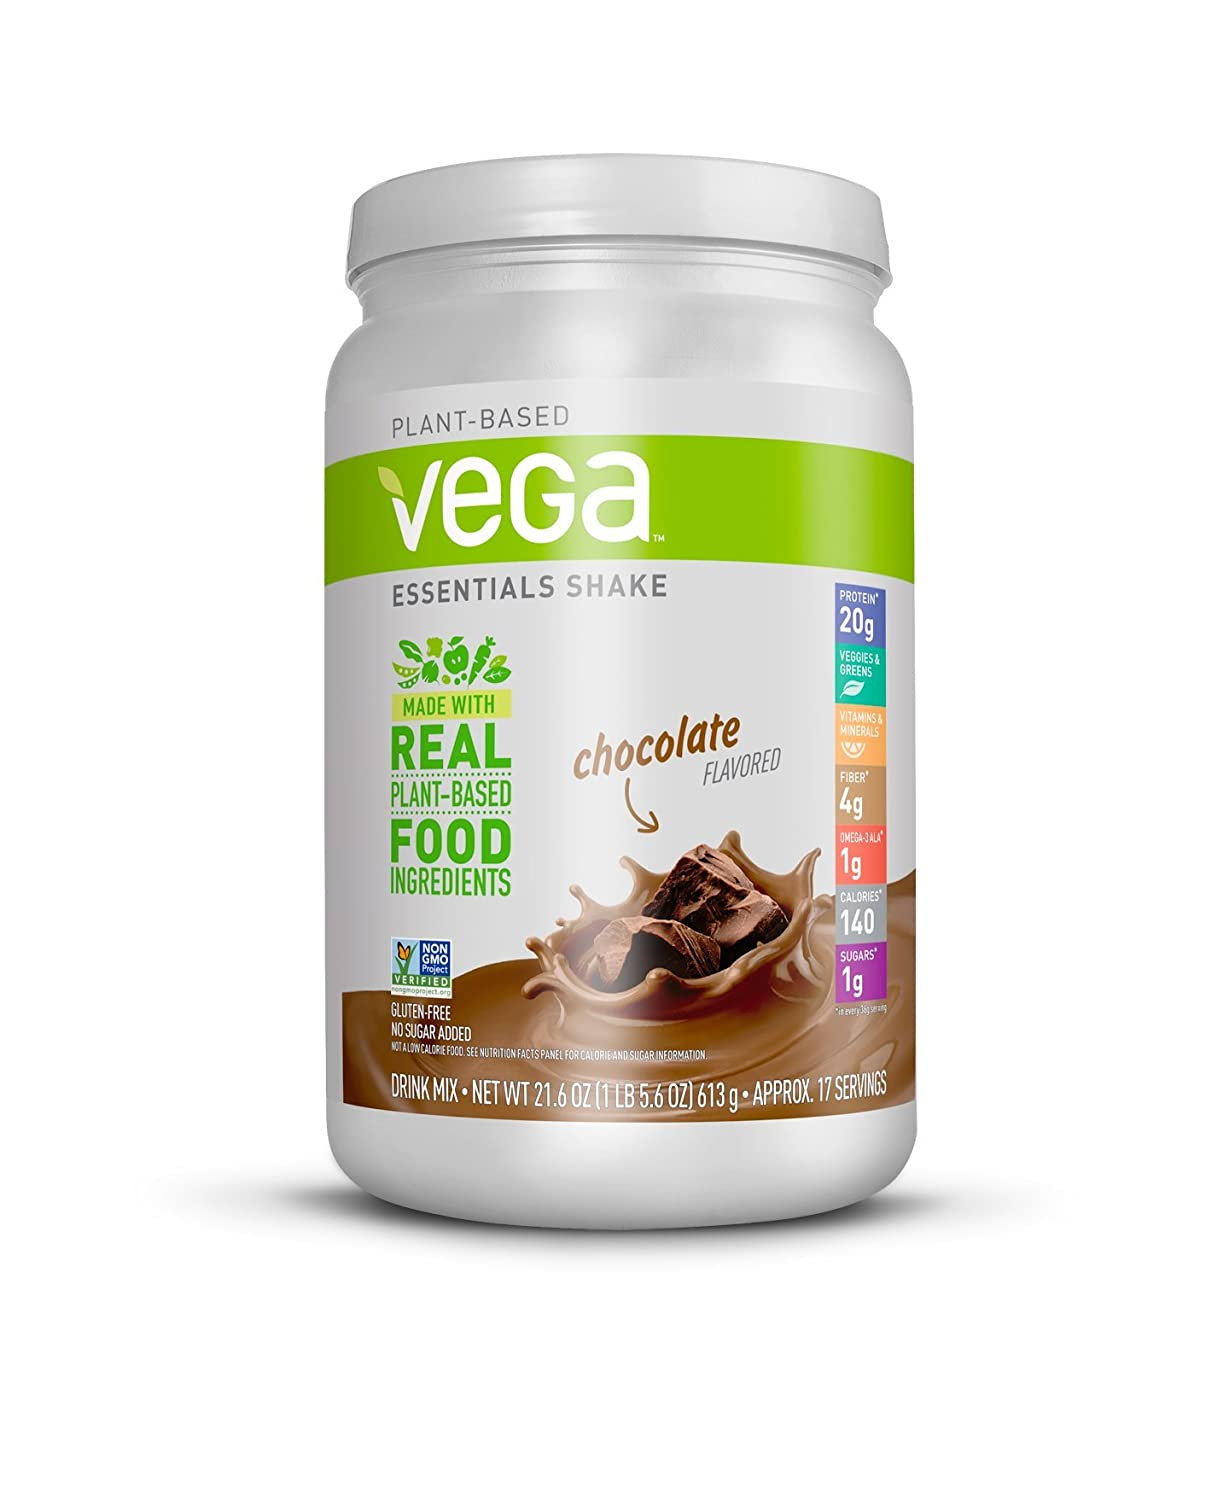 Vega Essentials Shake Chocolate 17 Servings, 21.6 Ounce – Plant Based Vegan Protein Powder, Non Dairy, Gluten Free, Smooth and Creamy, Non GMO